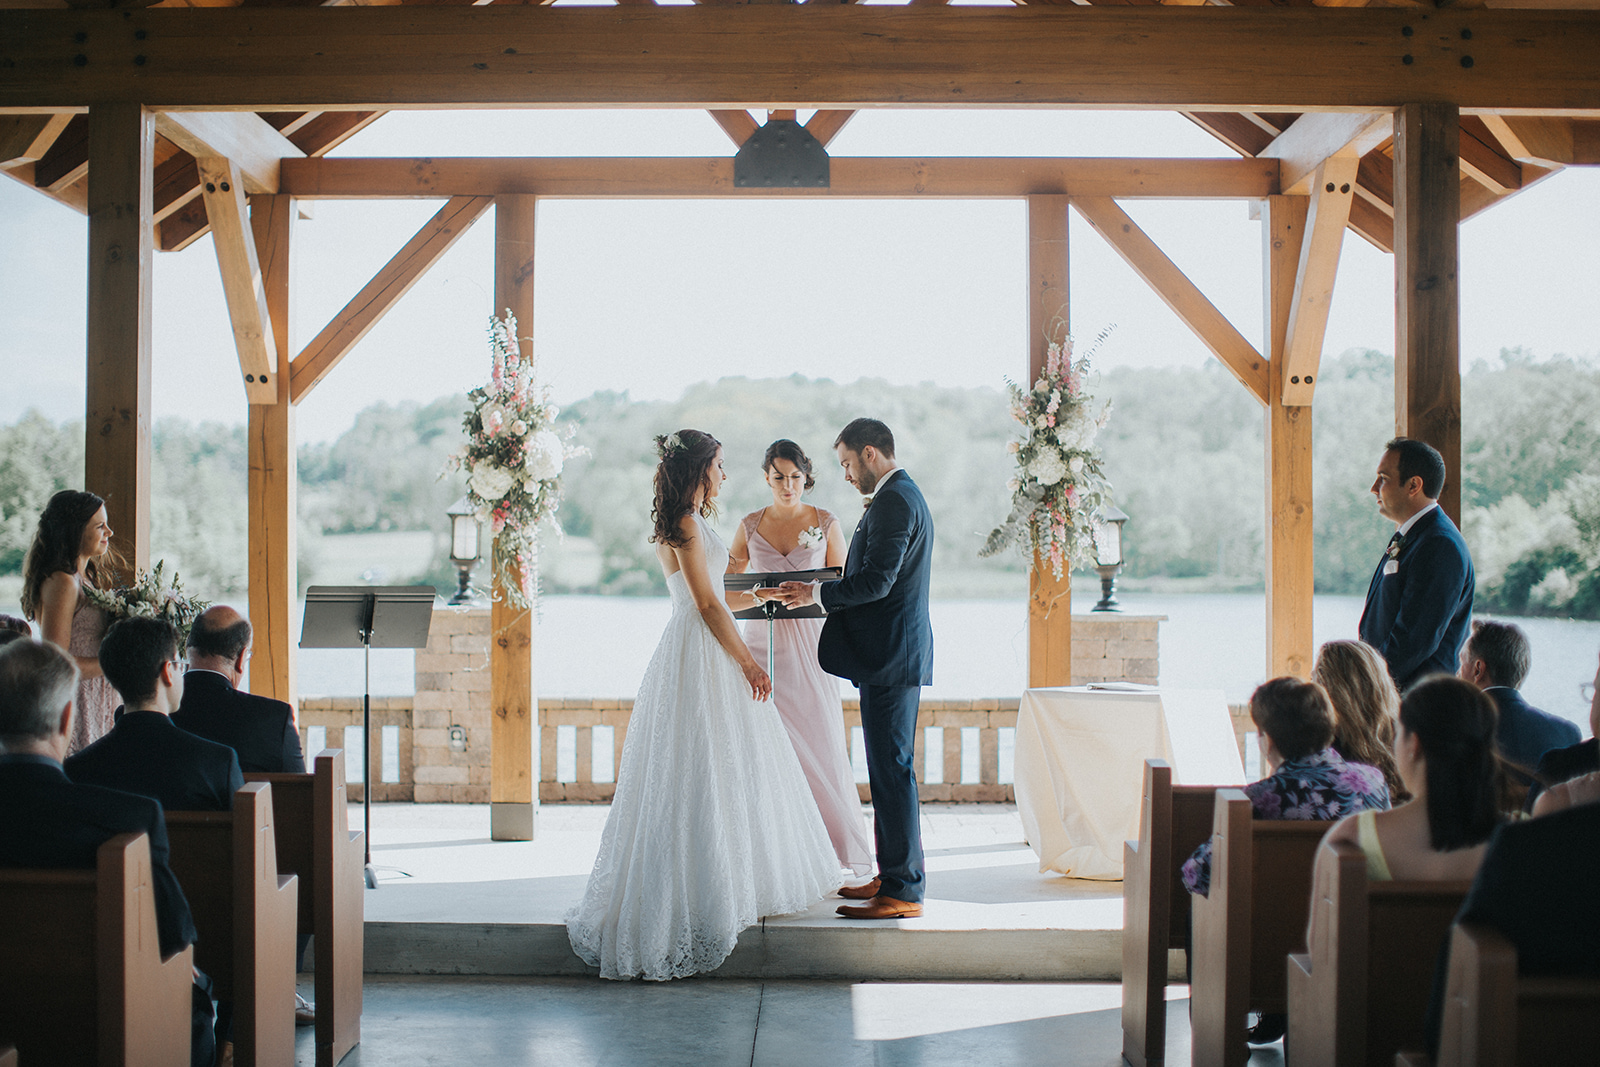 H+C Self-Uniting Wedding at SNPJ Resort Ashley Giffin Photography (2).jpg